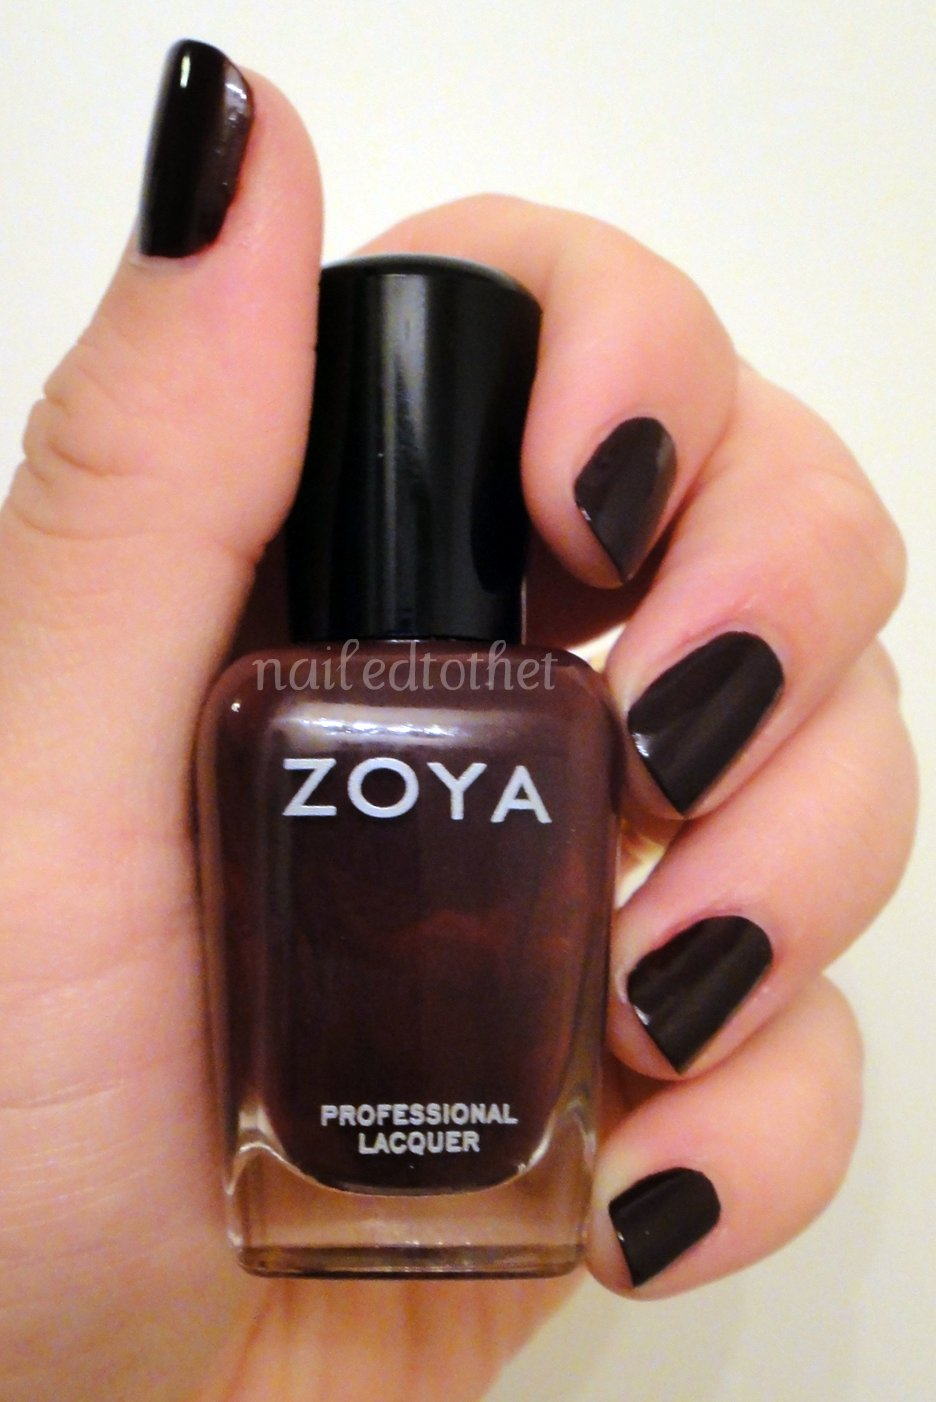 Nailed to the T: Zoya Anja & Nail-Venturous Rustic Remains